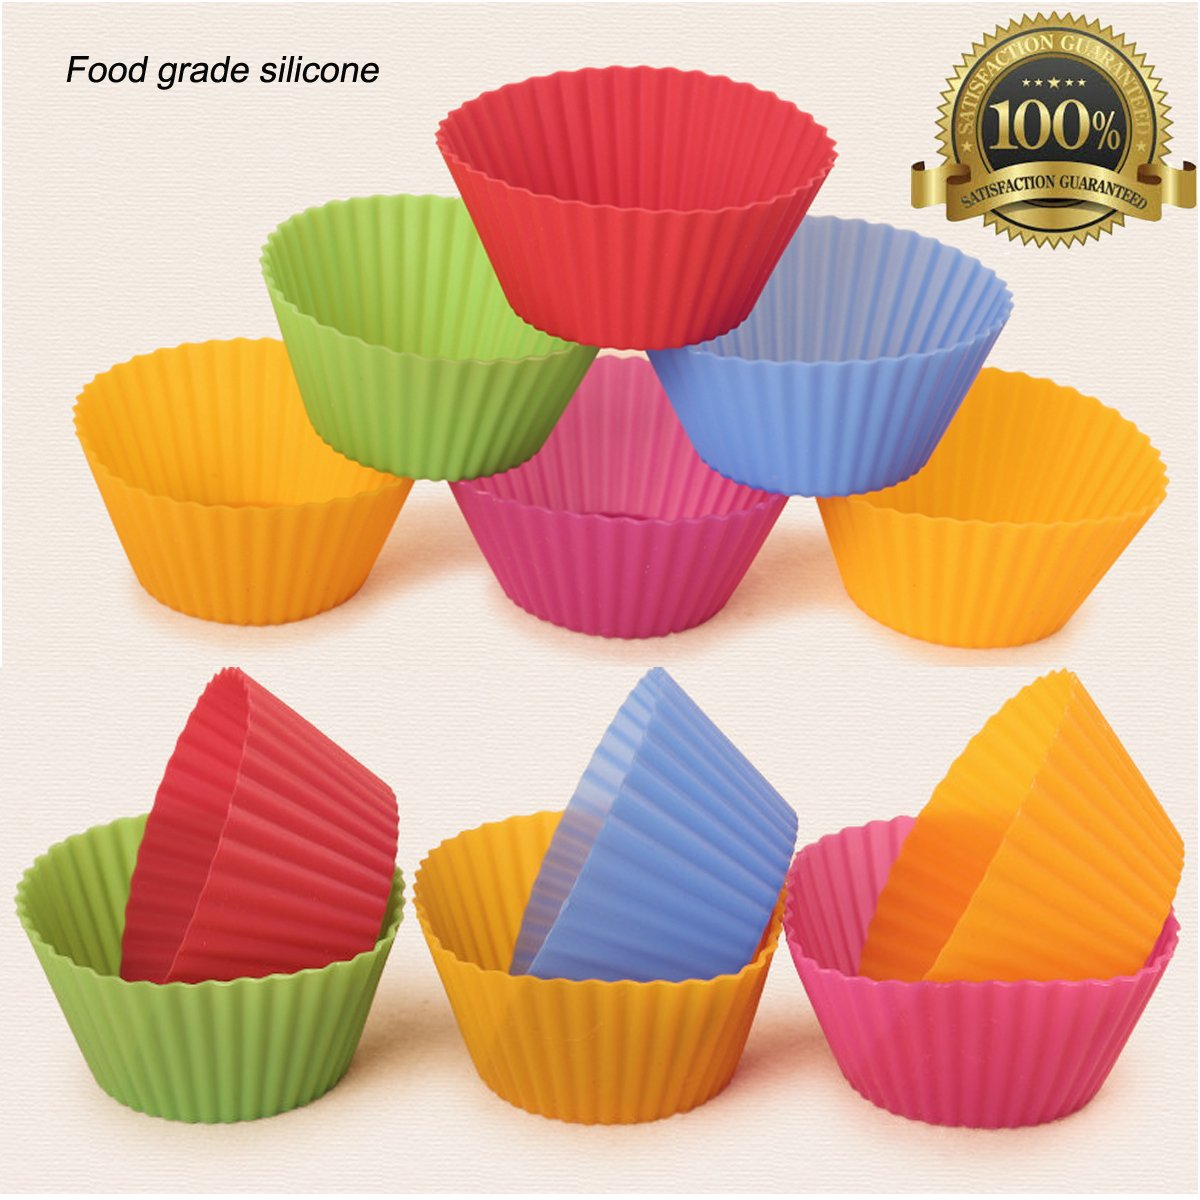 Rainbow Thicken Silicone Cupcake Muffin Baking Cups Liners Molds Sets 6 Vibrant Colors Round IDEASY Reusable /& Nonstick Muffin Molds,36 Pack